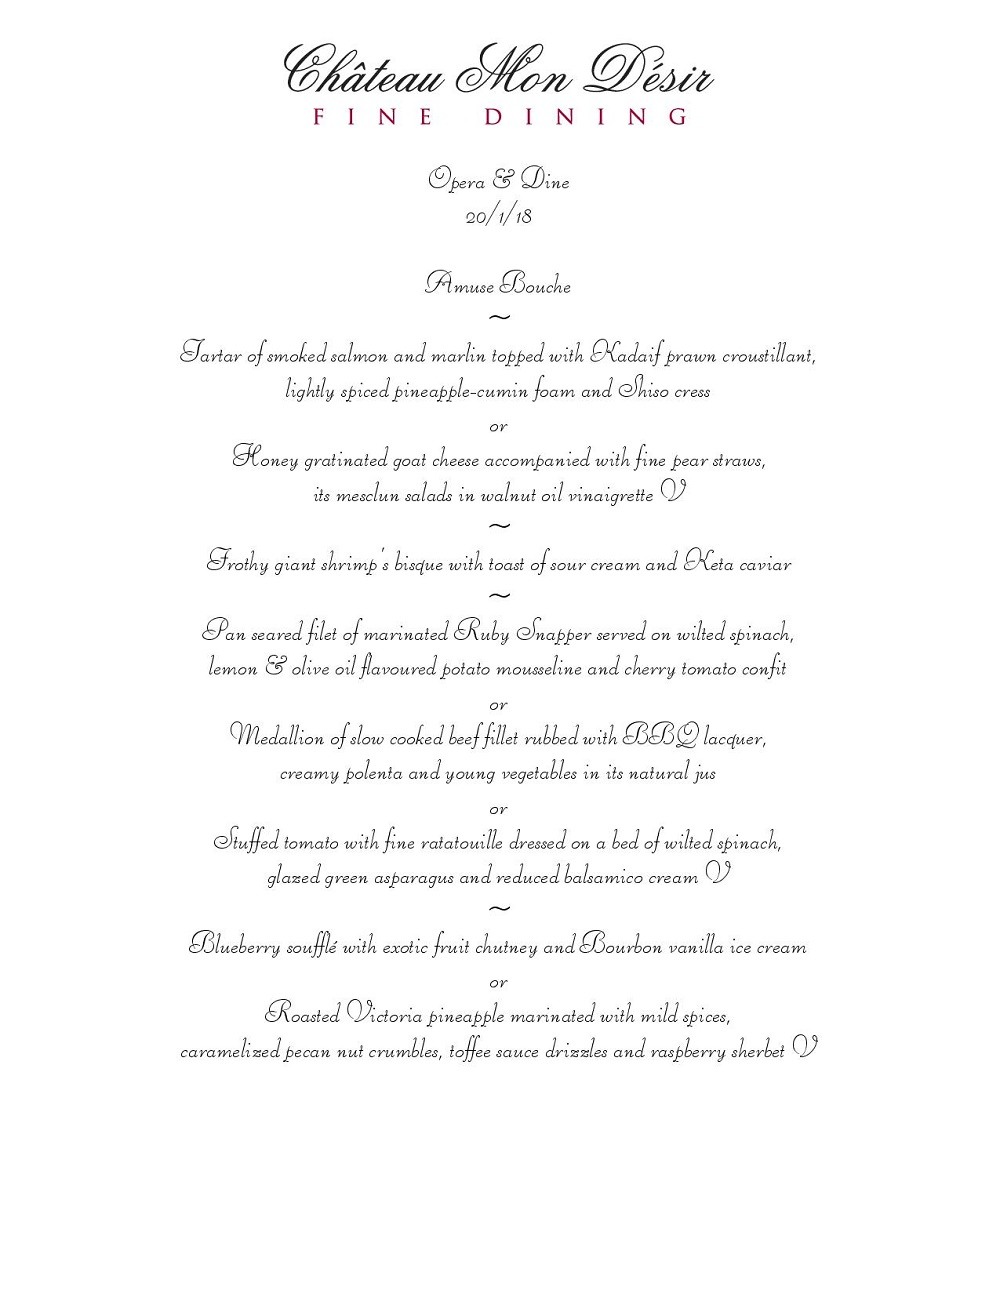 Opera Dine Menu GB Final Luxury Mauritius